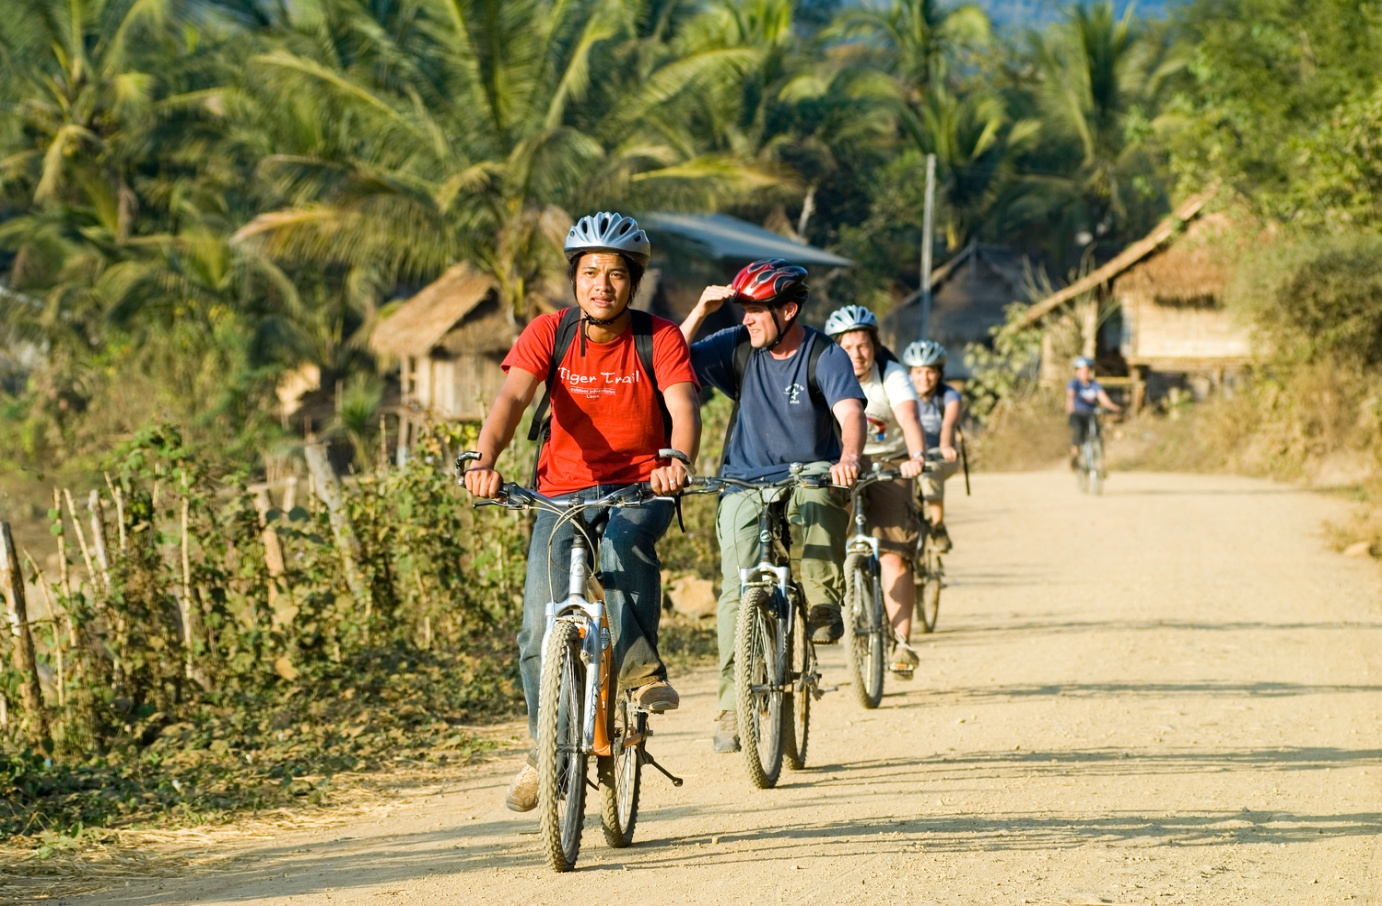 A cycling tour in Luang Prabang